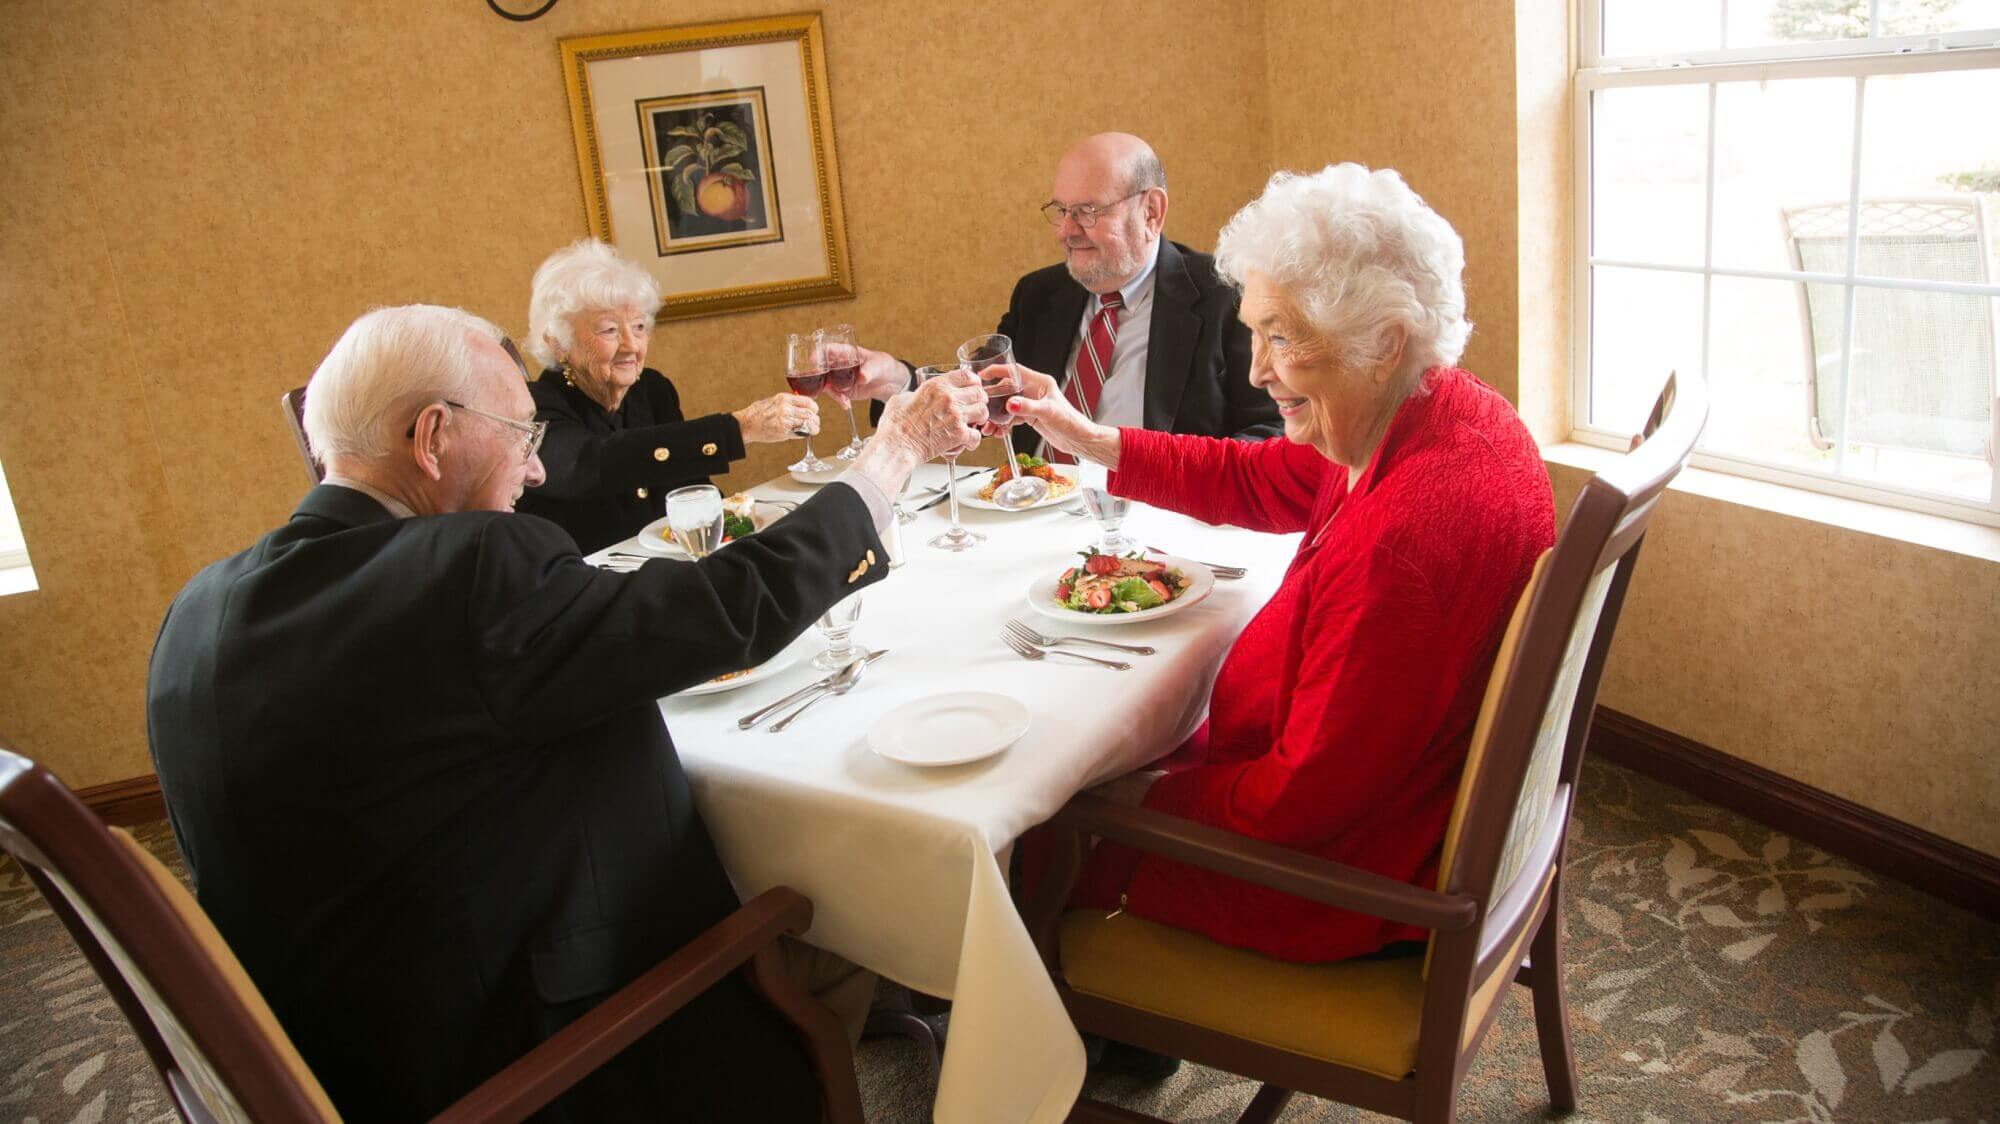 Senior friends dining at the table, cheering their wine glasses together.